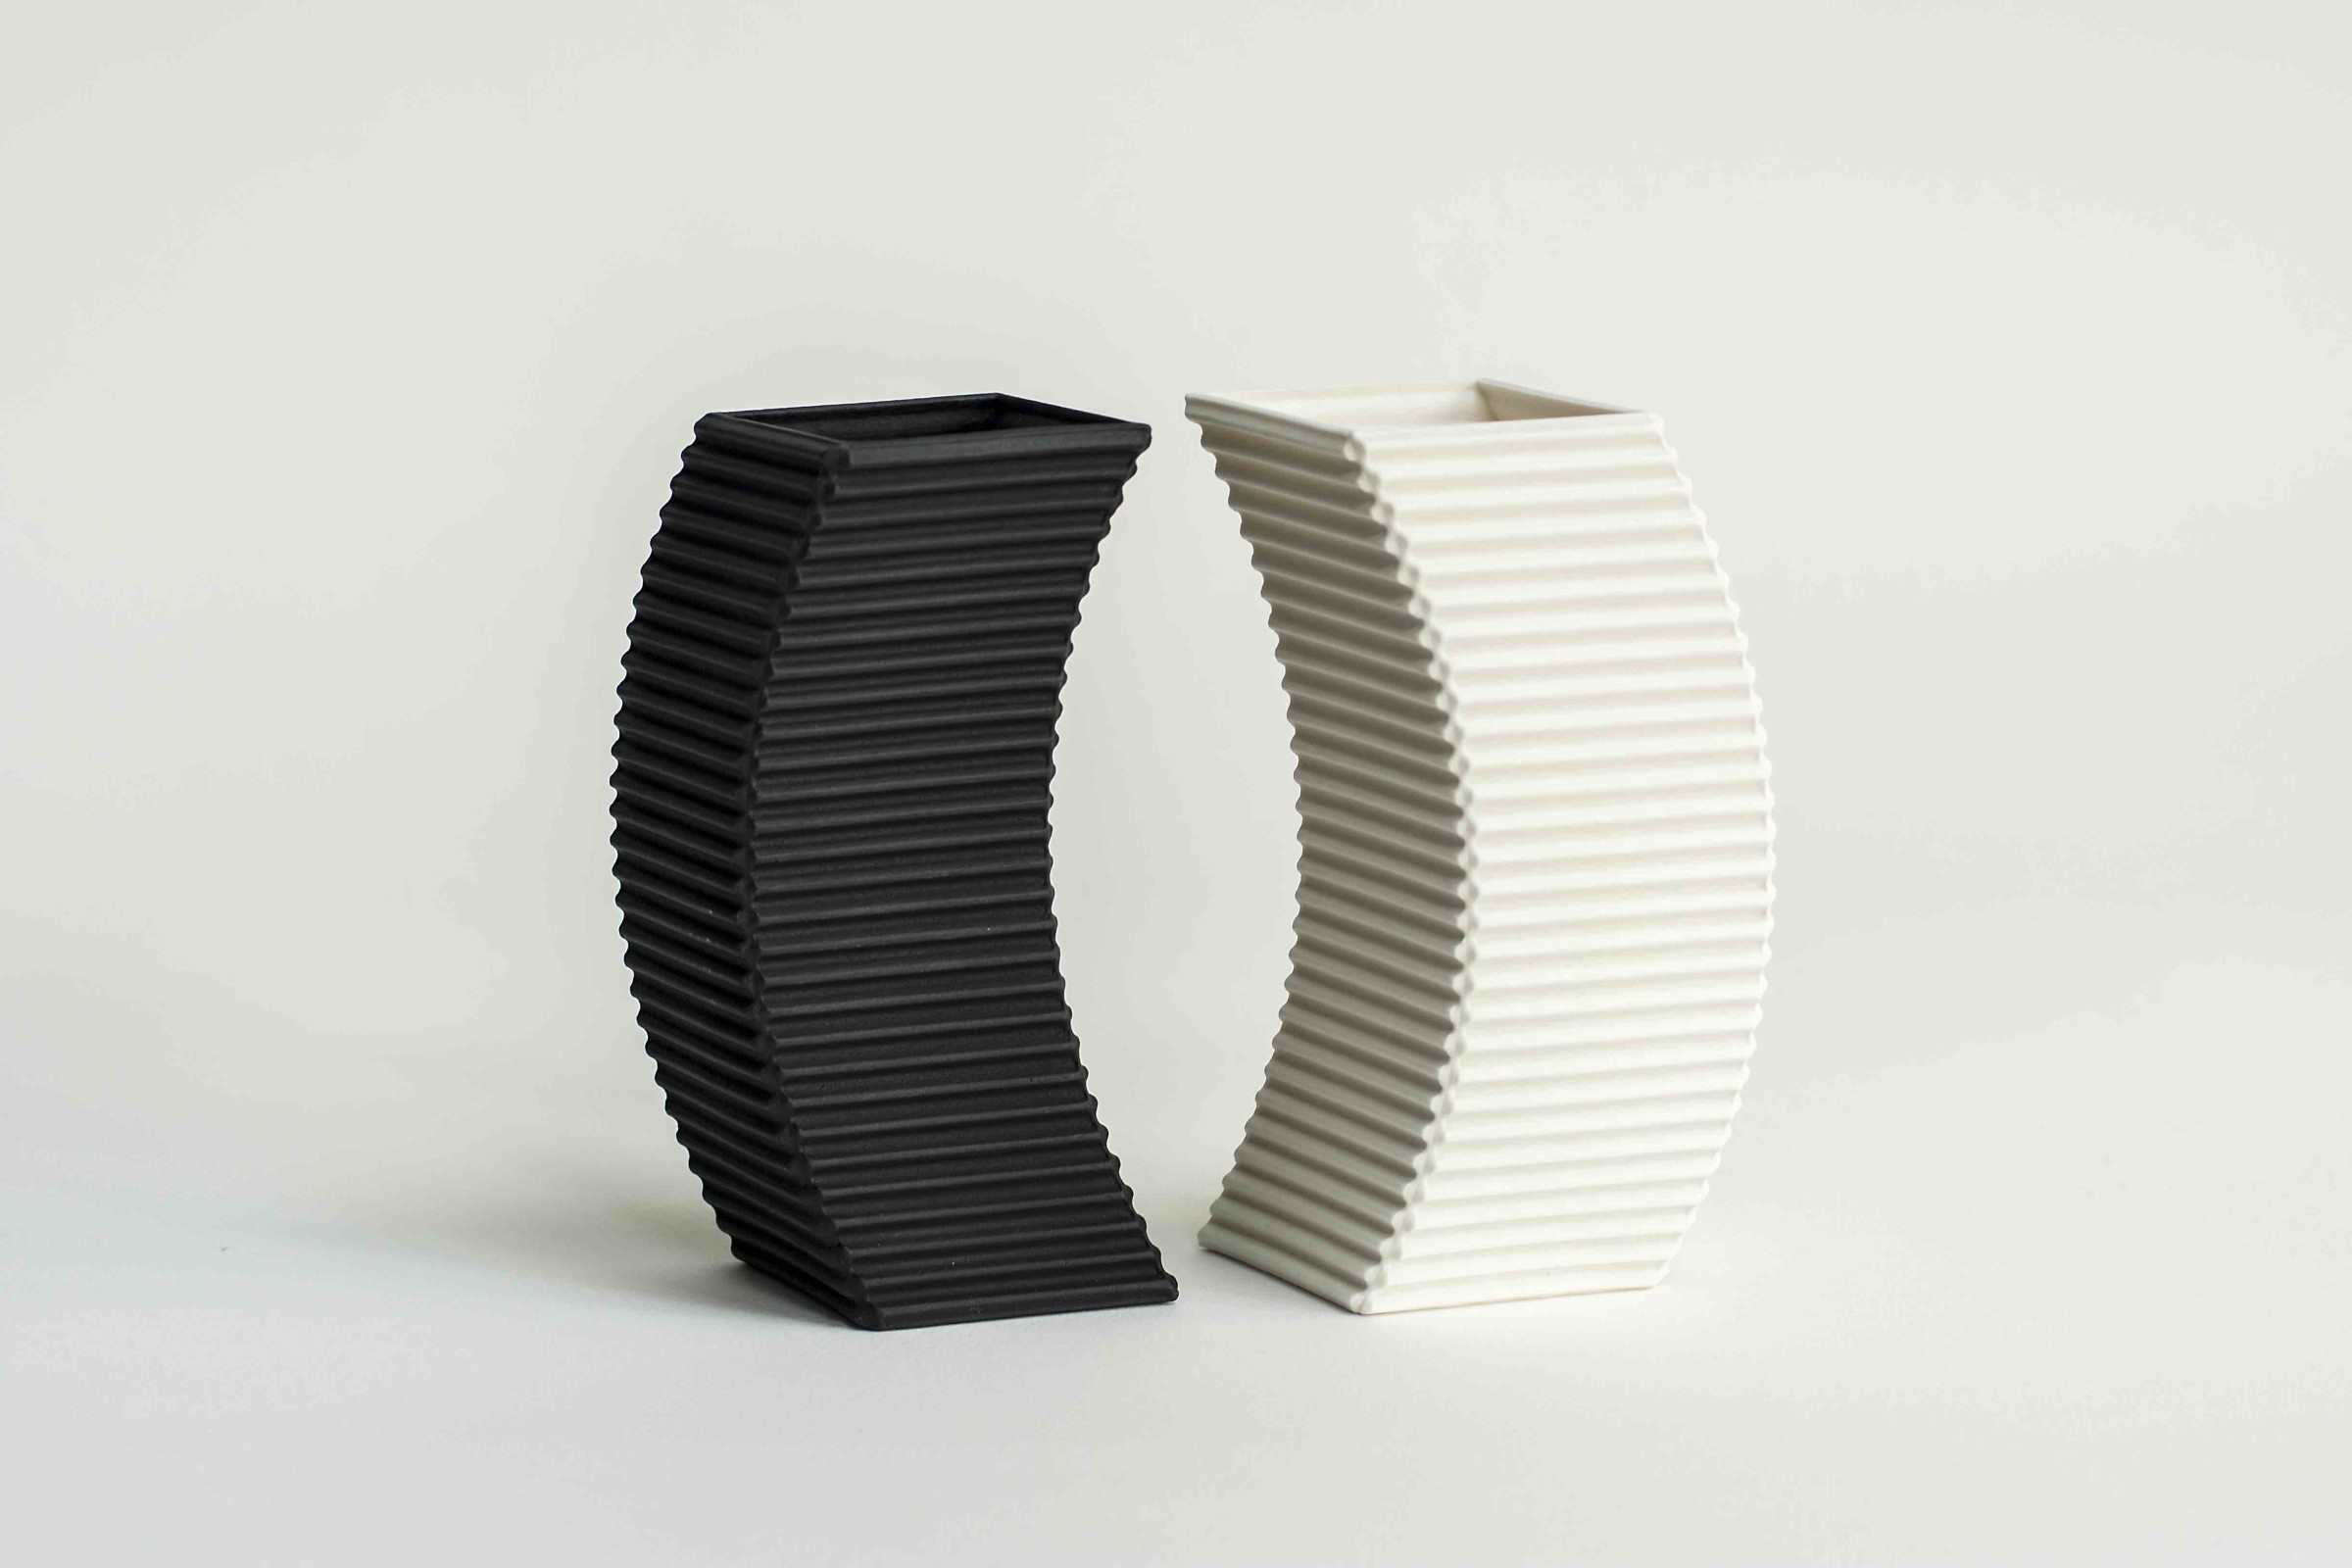 <span class=&#34;link fancybox-details-link&#34;><a href=&#34;/artists/32-keith-varney/works/5753-keith-varney-converge-pair-black-white-porcelain-2018/&#34;>View Detail Page</a></span><div class=&#34;artist&#34;><strong>Keith Varney</strong></div> <div class=&#34;title&#34;><em>Converge pair-black & white porcelain</em>, 2018</div> <div class=&#34;signed_and_dated&#34;>signed on the base</div> <div class=&#34;medium&#34;>hand built porcelain</div> <div class=&#34;dimensions&#34;>15 x 9 cm<br /> 5 7/8 x 3 1/2 inches</div><div class=&#34;copyright_line&#34;>OwnArt: £ 23 x 10 Months, 0% APR</div>